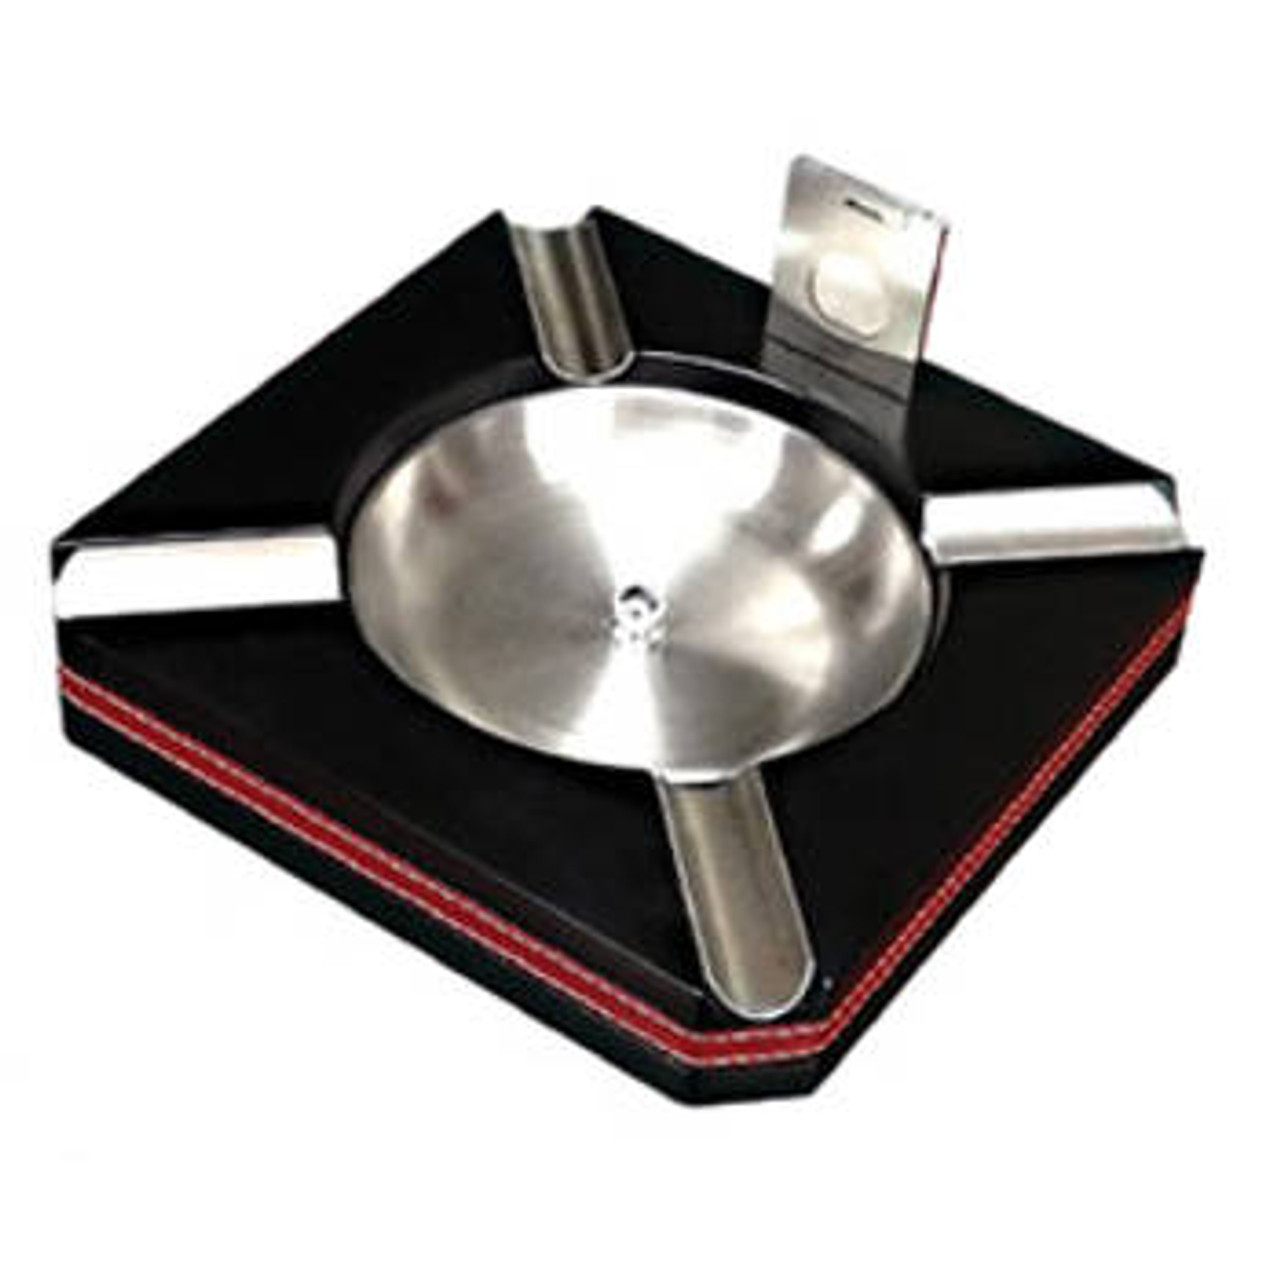 Leather Trim Ashtray with Cutter